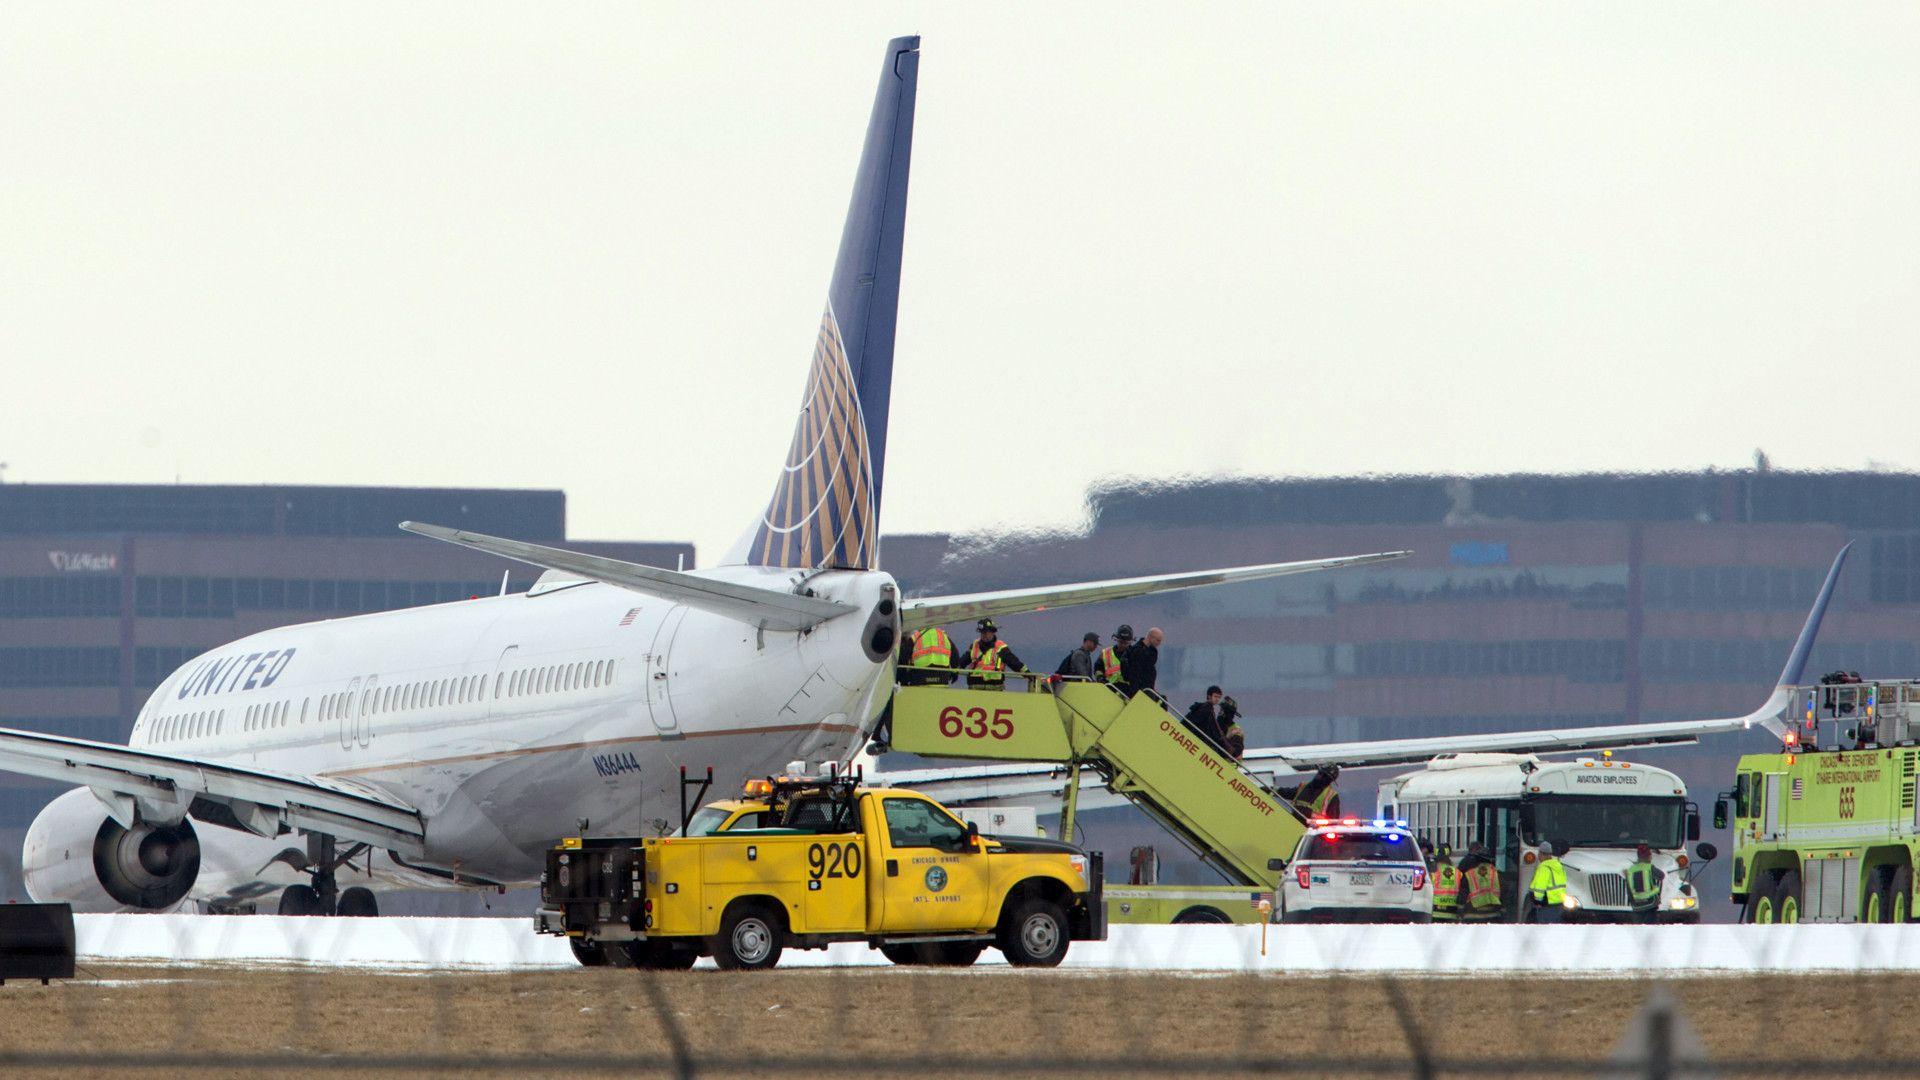 No injuries reported when plane slides off runway after landing at o hare chicago tribune